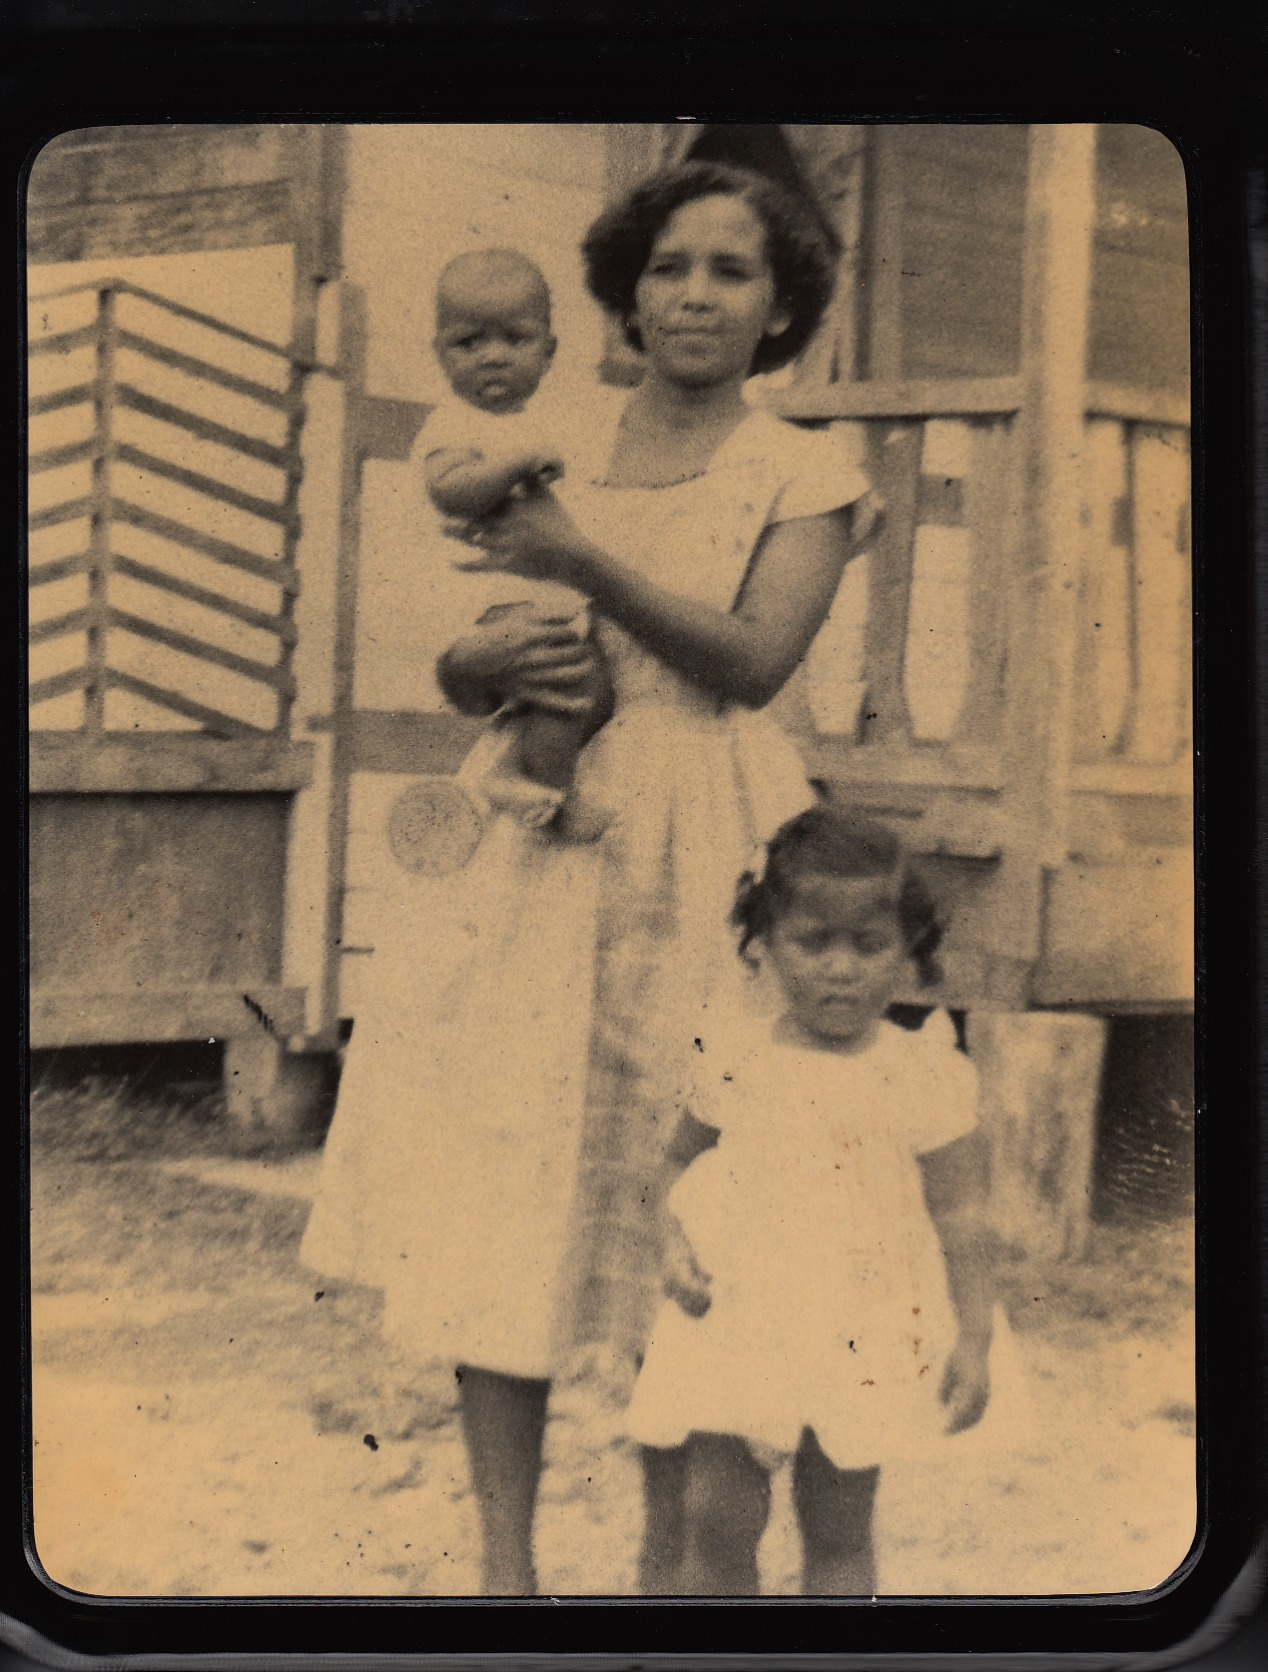 """Bryant Family""   Playa Negra   1961   In those days there was no light, not so many neighbors. We lived close together like family.     Personas: Maritza Bryant, Margarita Montoya, Ana Bryant   Colaborador: Ana Bryant  CC_001_016"